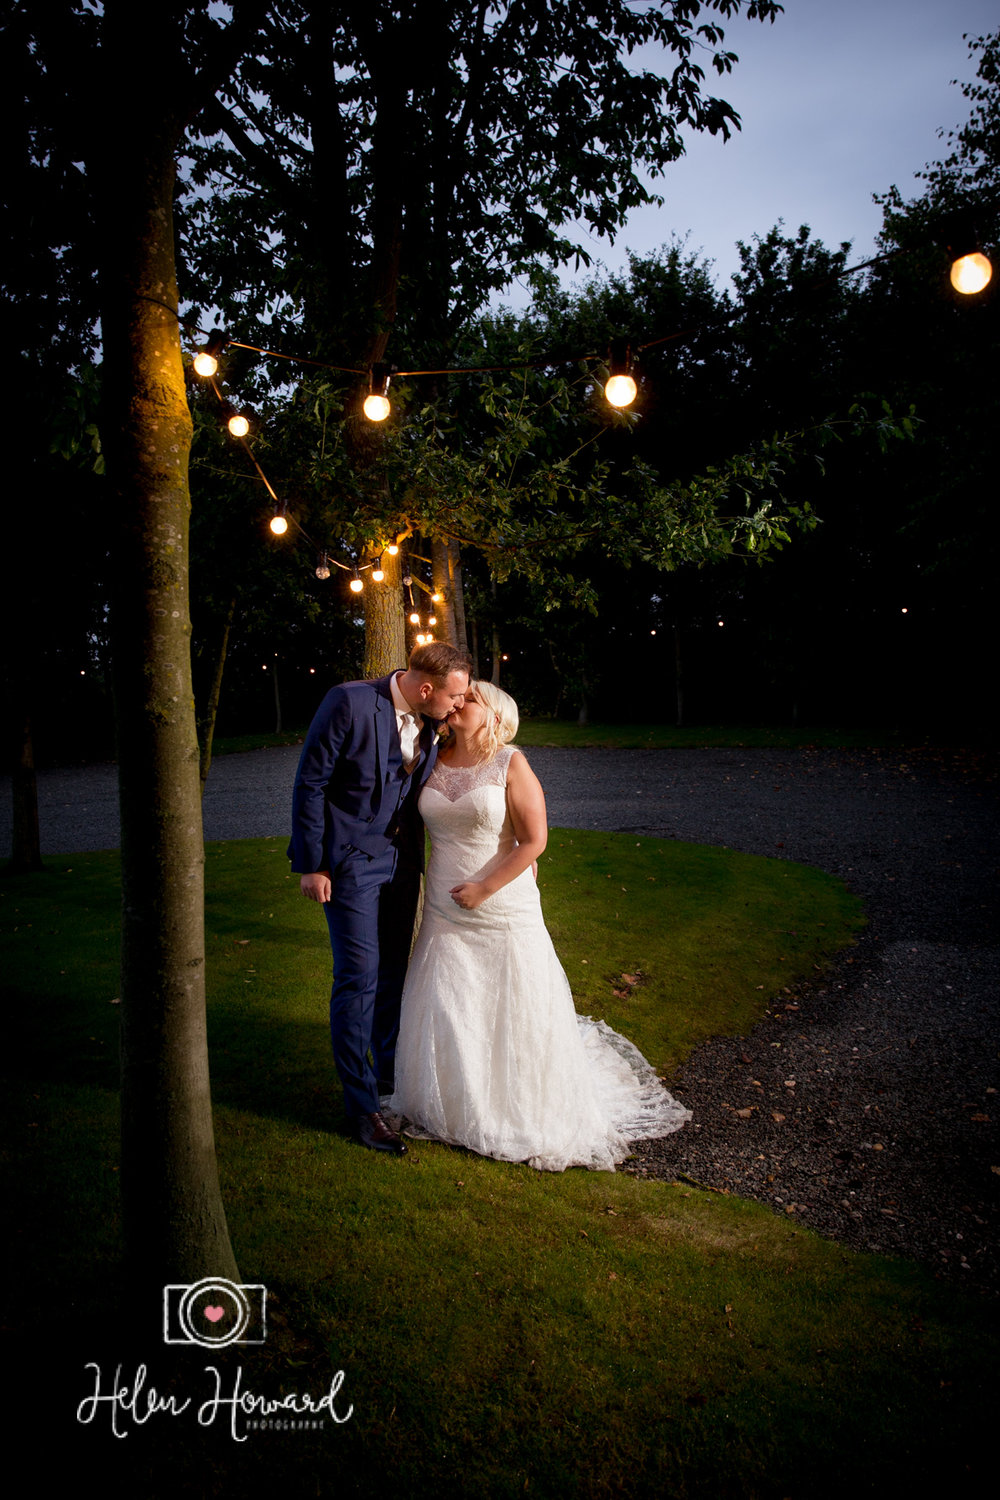 Shustoke Farm Barns Wedding Photography by Helen Howard-43.jpg